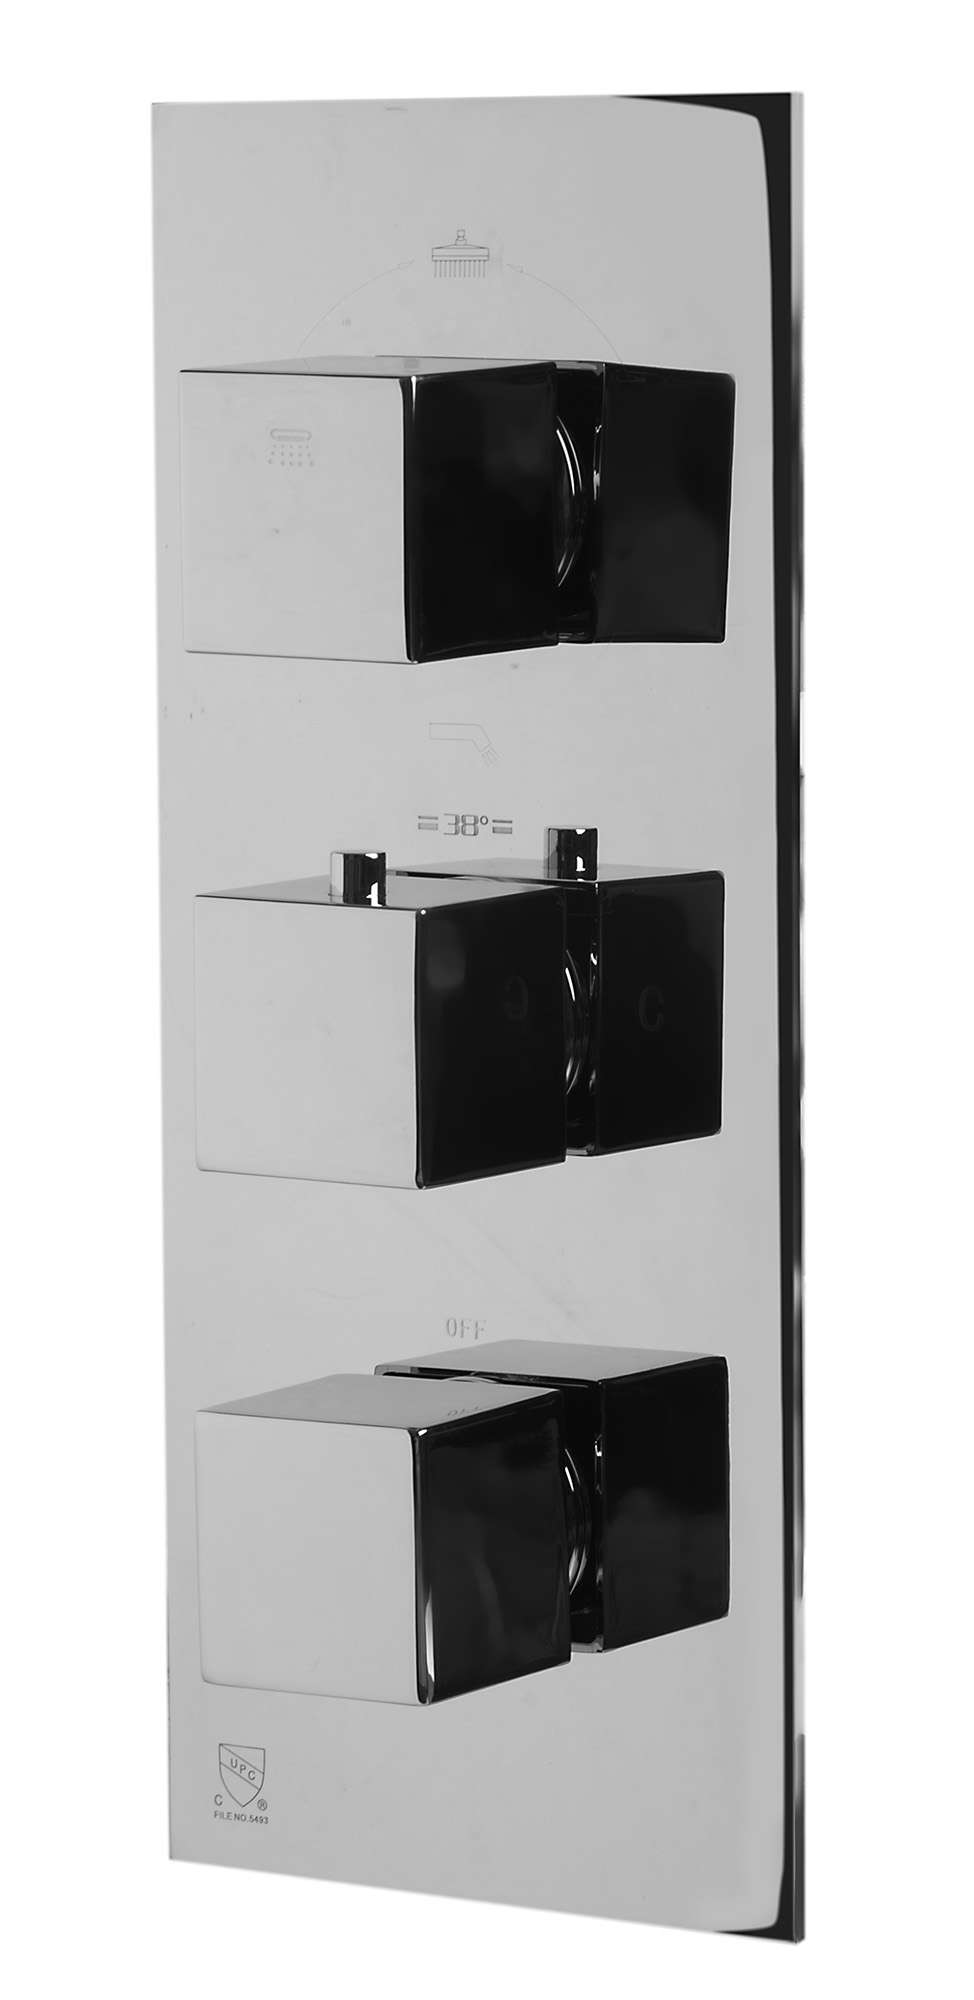 AB2901-PC Polished Chrome Concealed 4-Way Thermostatic Valve Shower Mixer /w Square Knobs